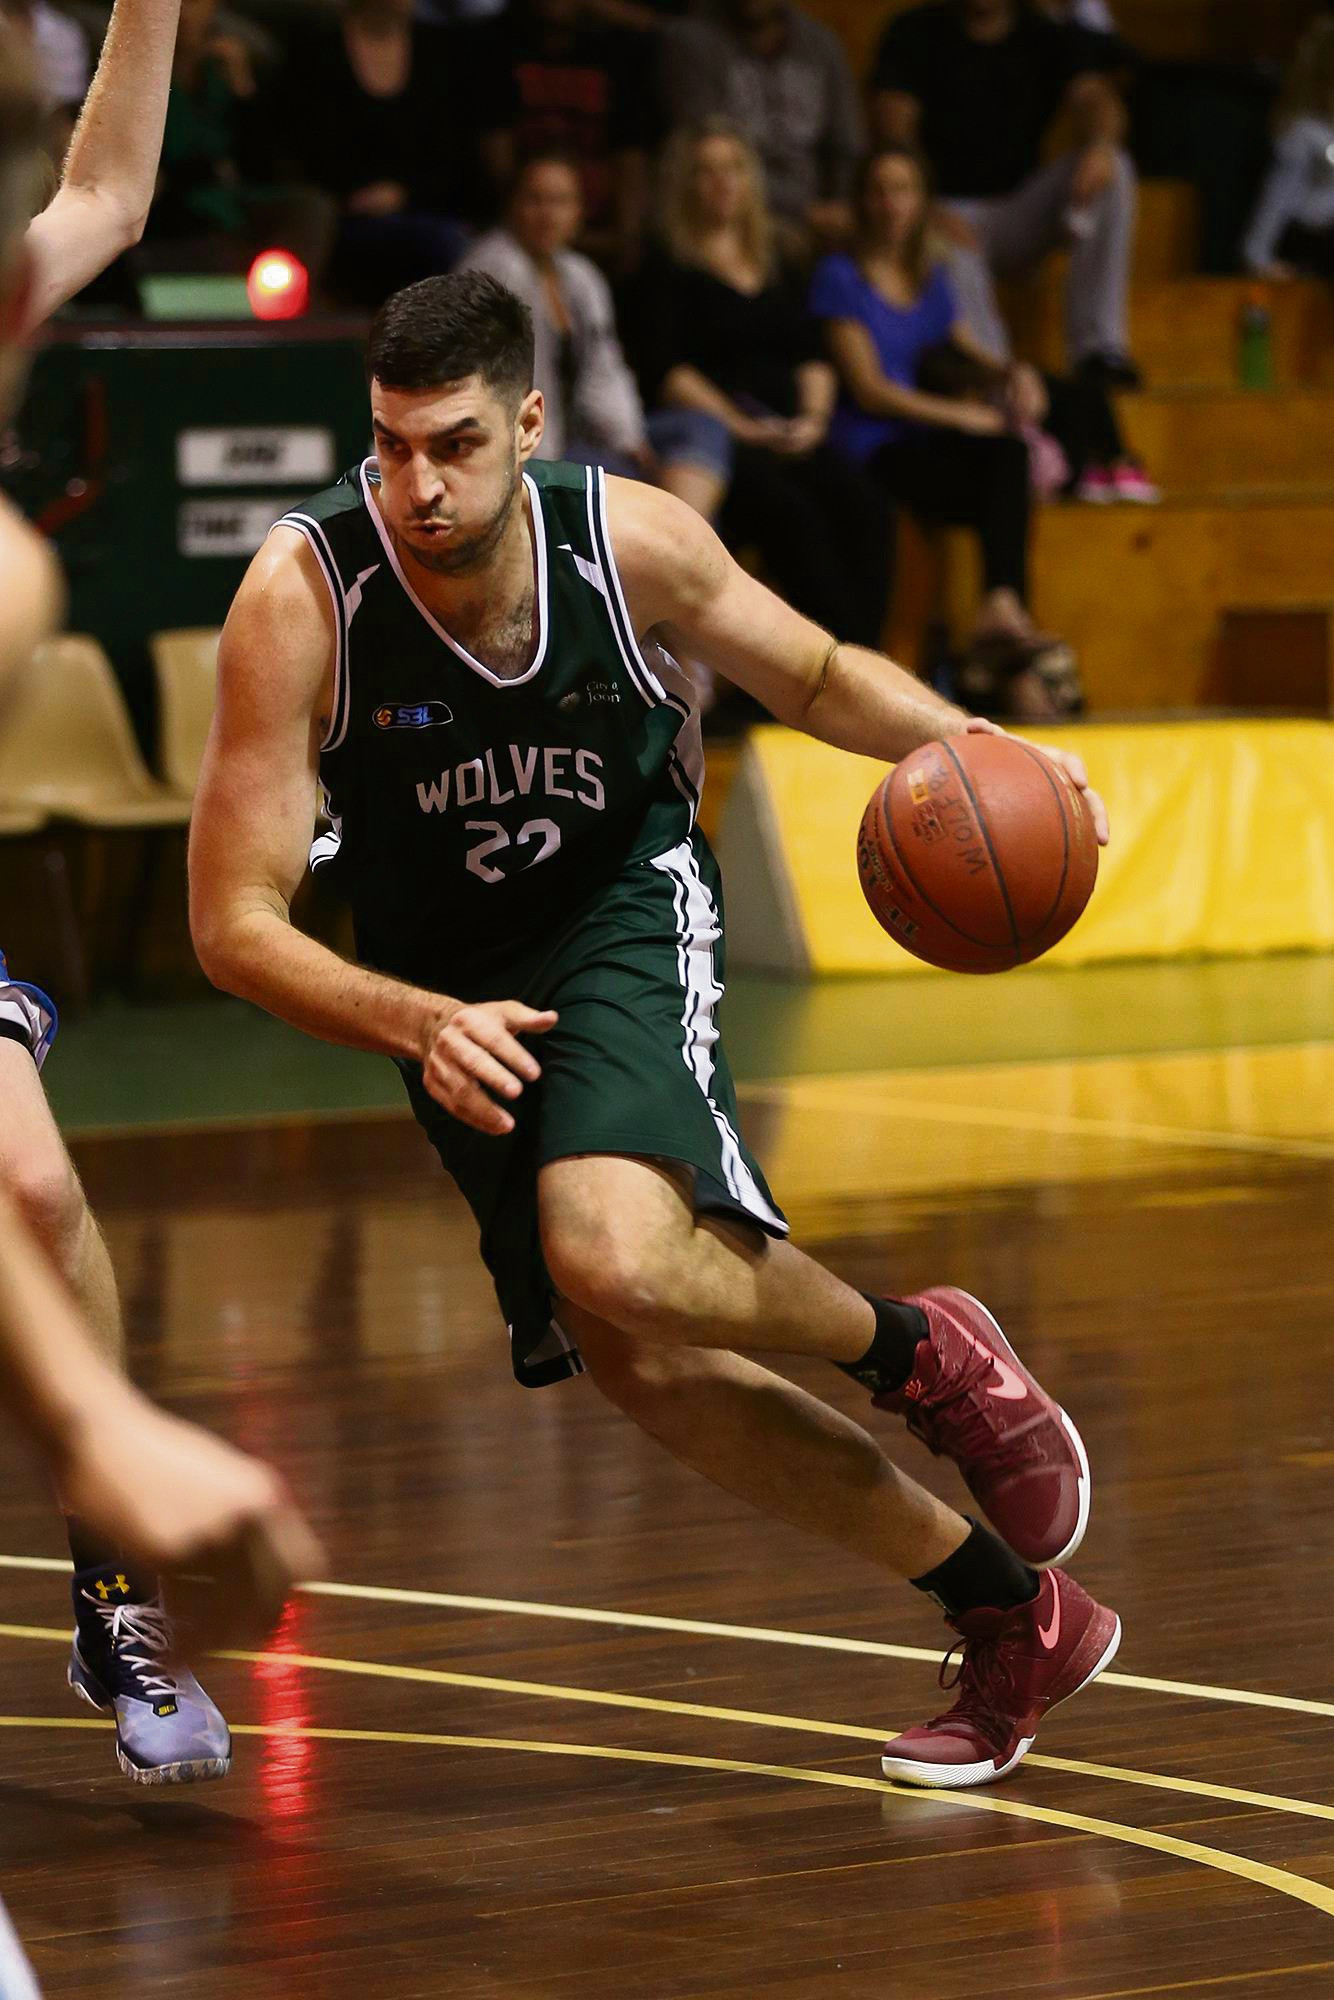 Rob Huntington was the Wolves' top scorer against Kalamunda. Picture: Michael Farnell, sportsimagery.com.au